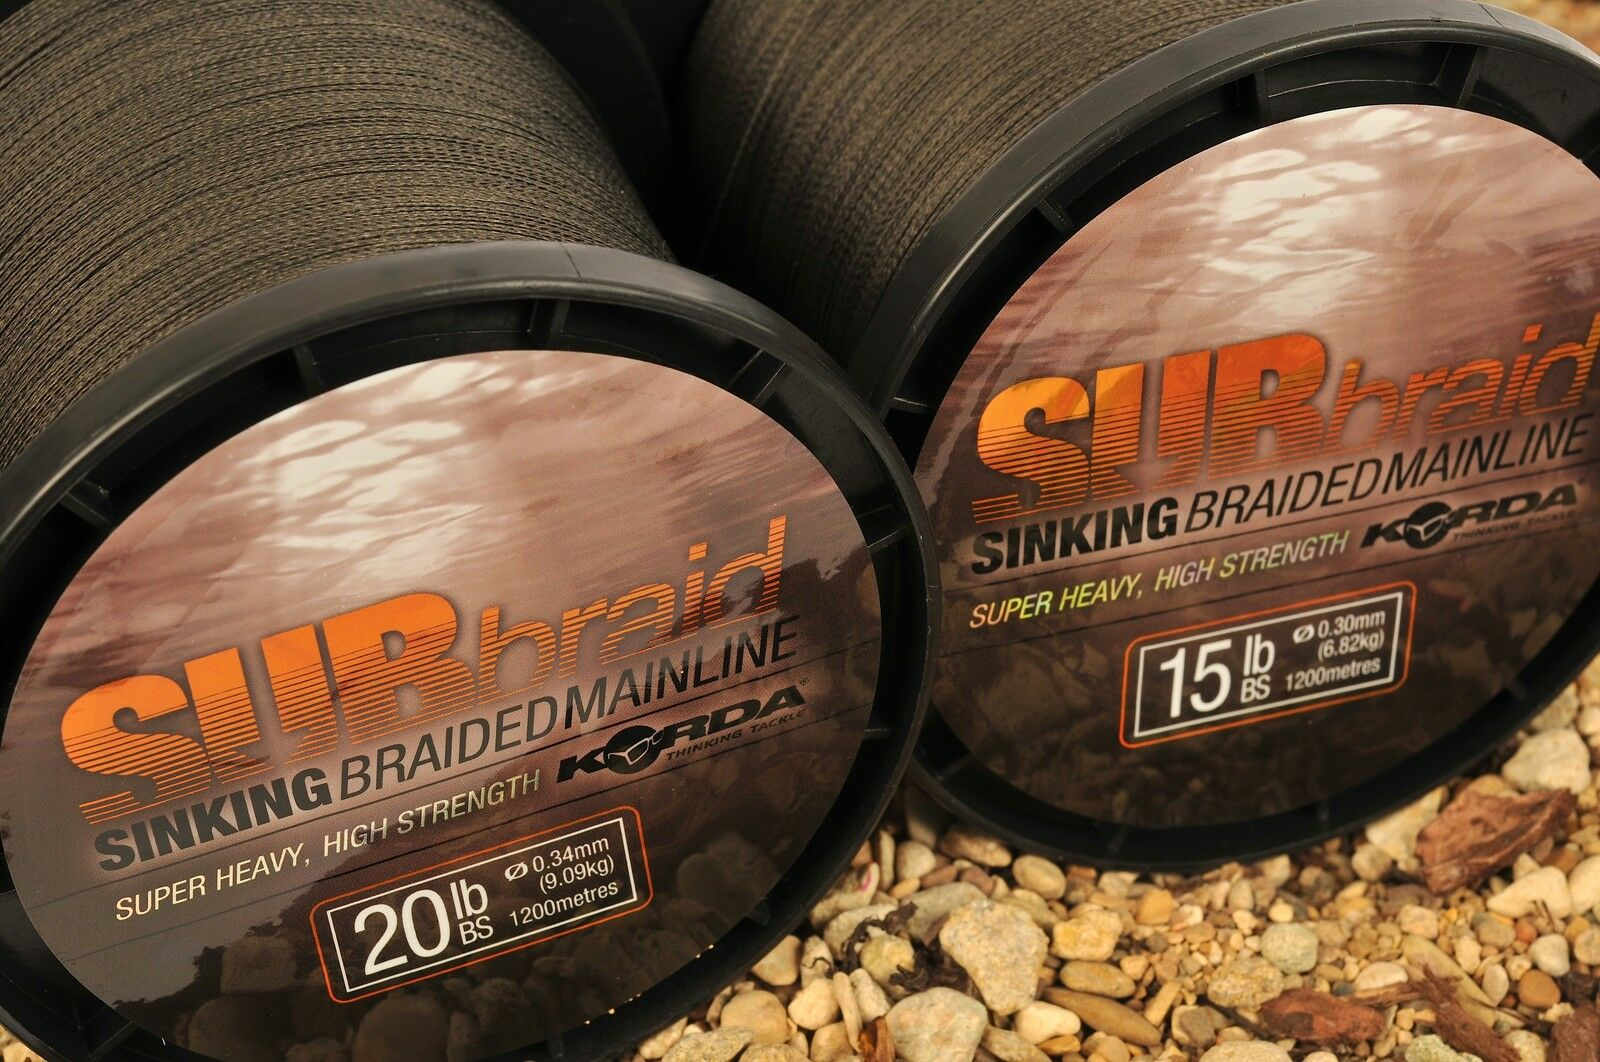 Korda NEW Carp Fishing Sinking Green Sub Braid Line 1200m All Breaking Strains